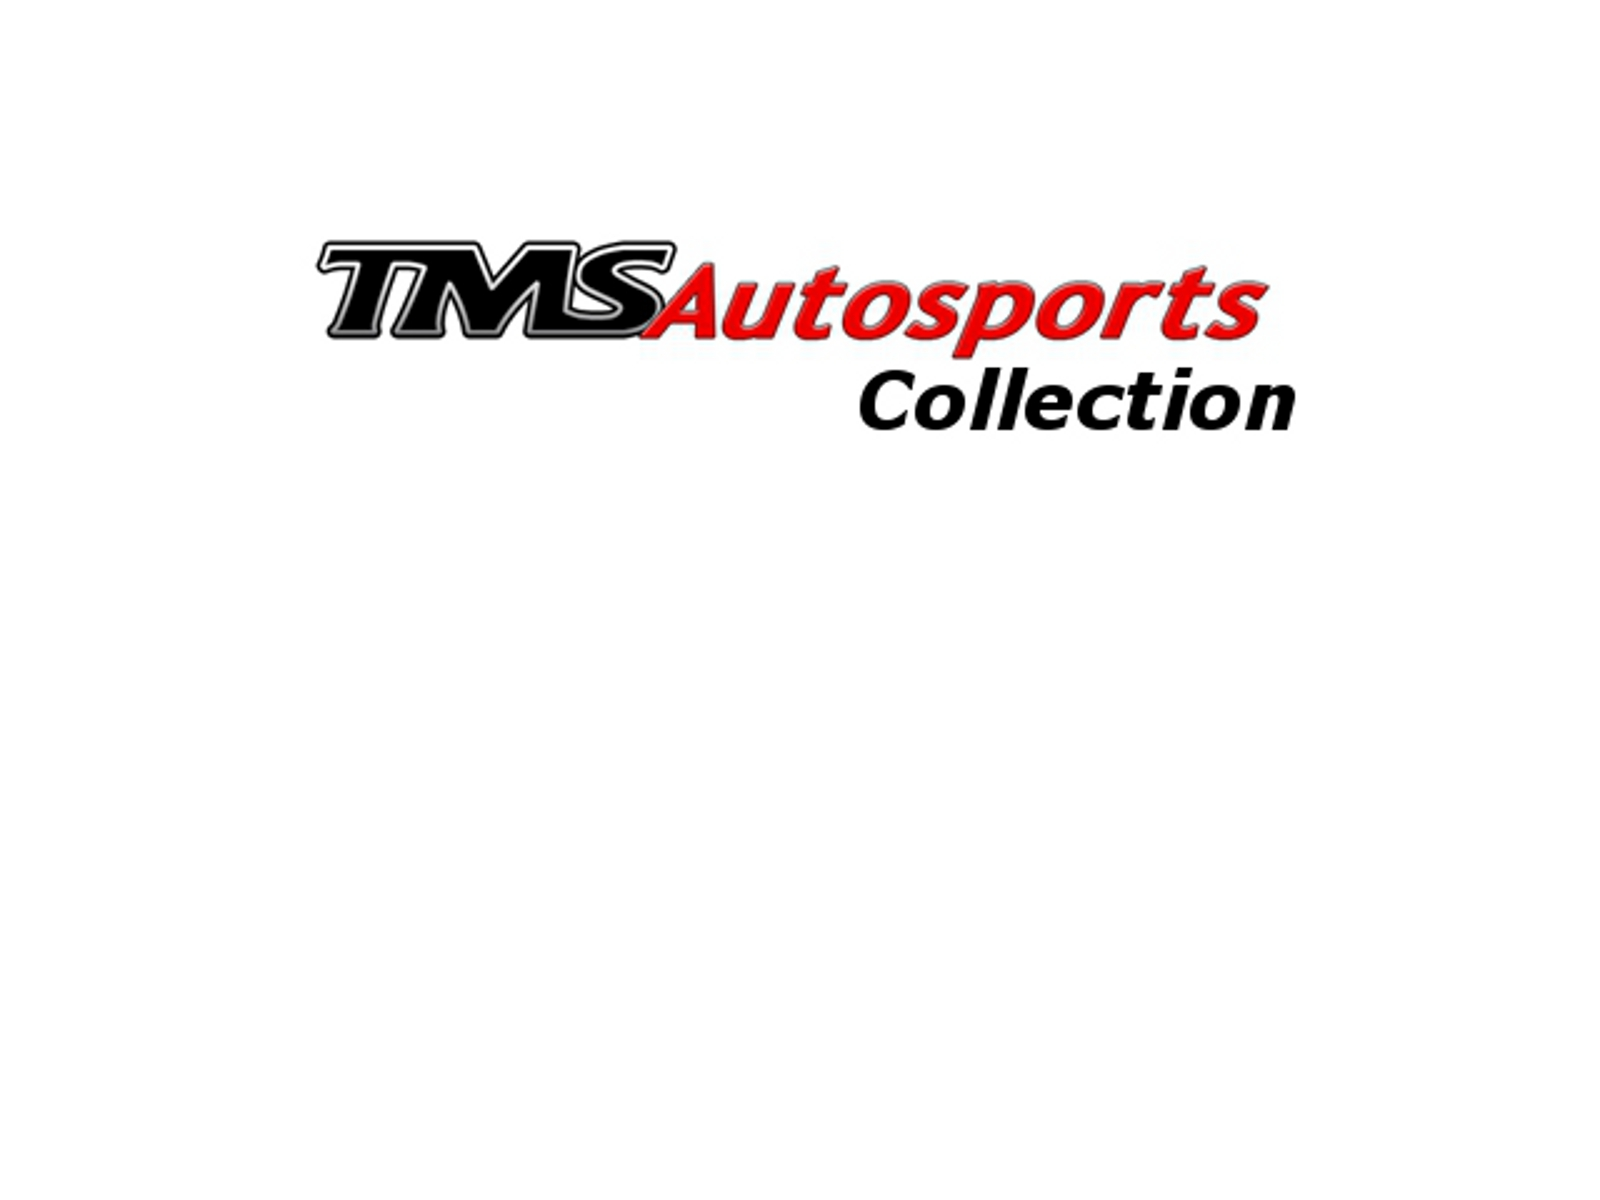 tmsautosports-collection-logo-1600x1200